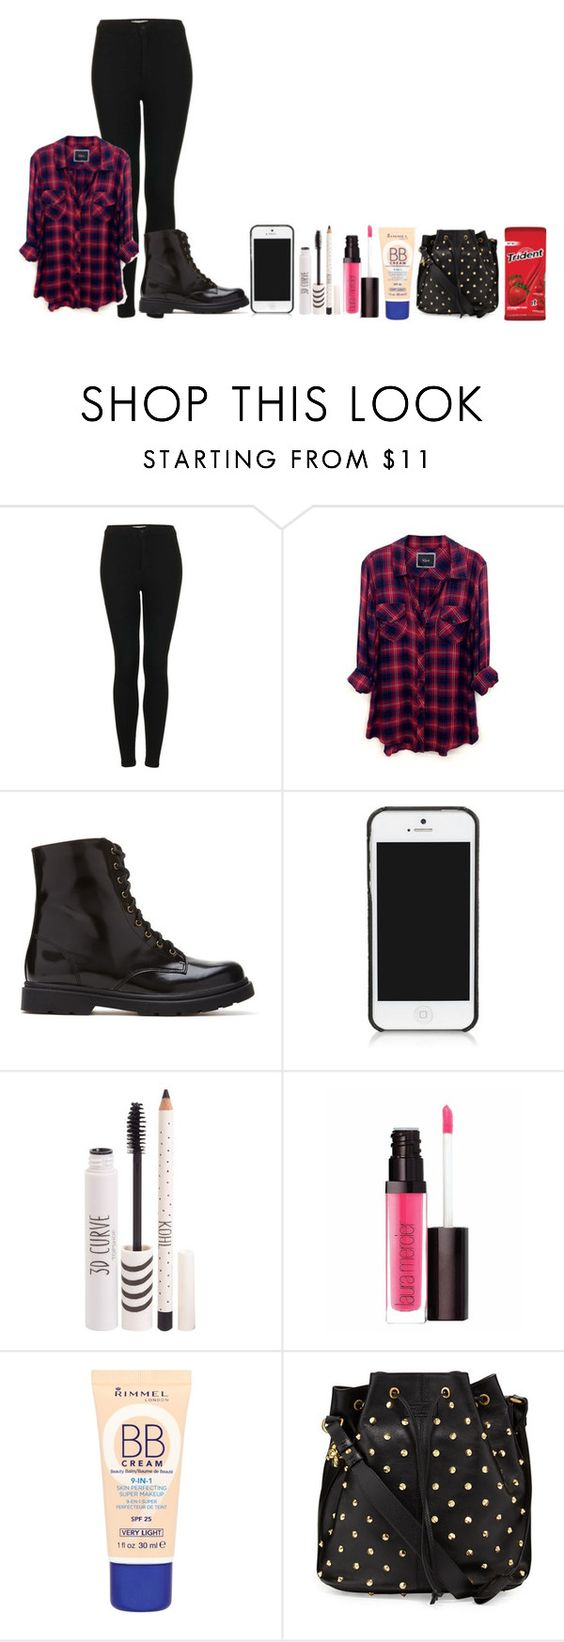 """Night Out"" by xkidinthedarkx ❤ liked on Polyvore featuring Topshop, Rails, Forever 21, Tory Burch, Laura Mercier, Rimmel and Alexander McQueen"